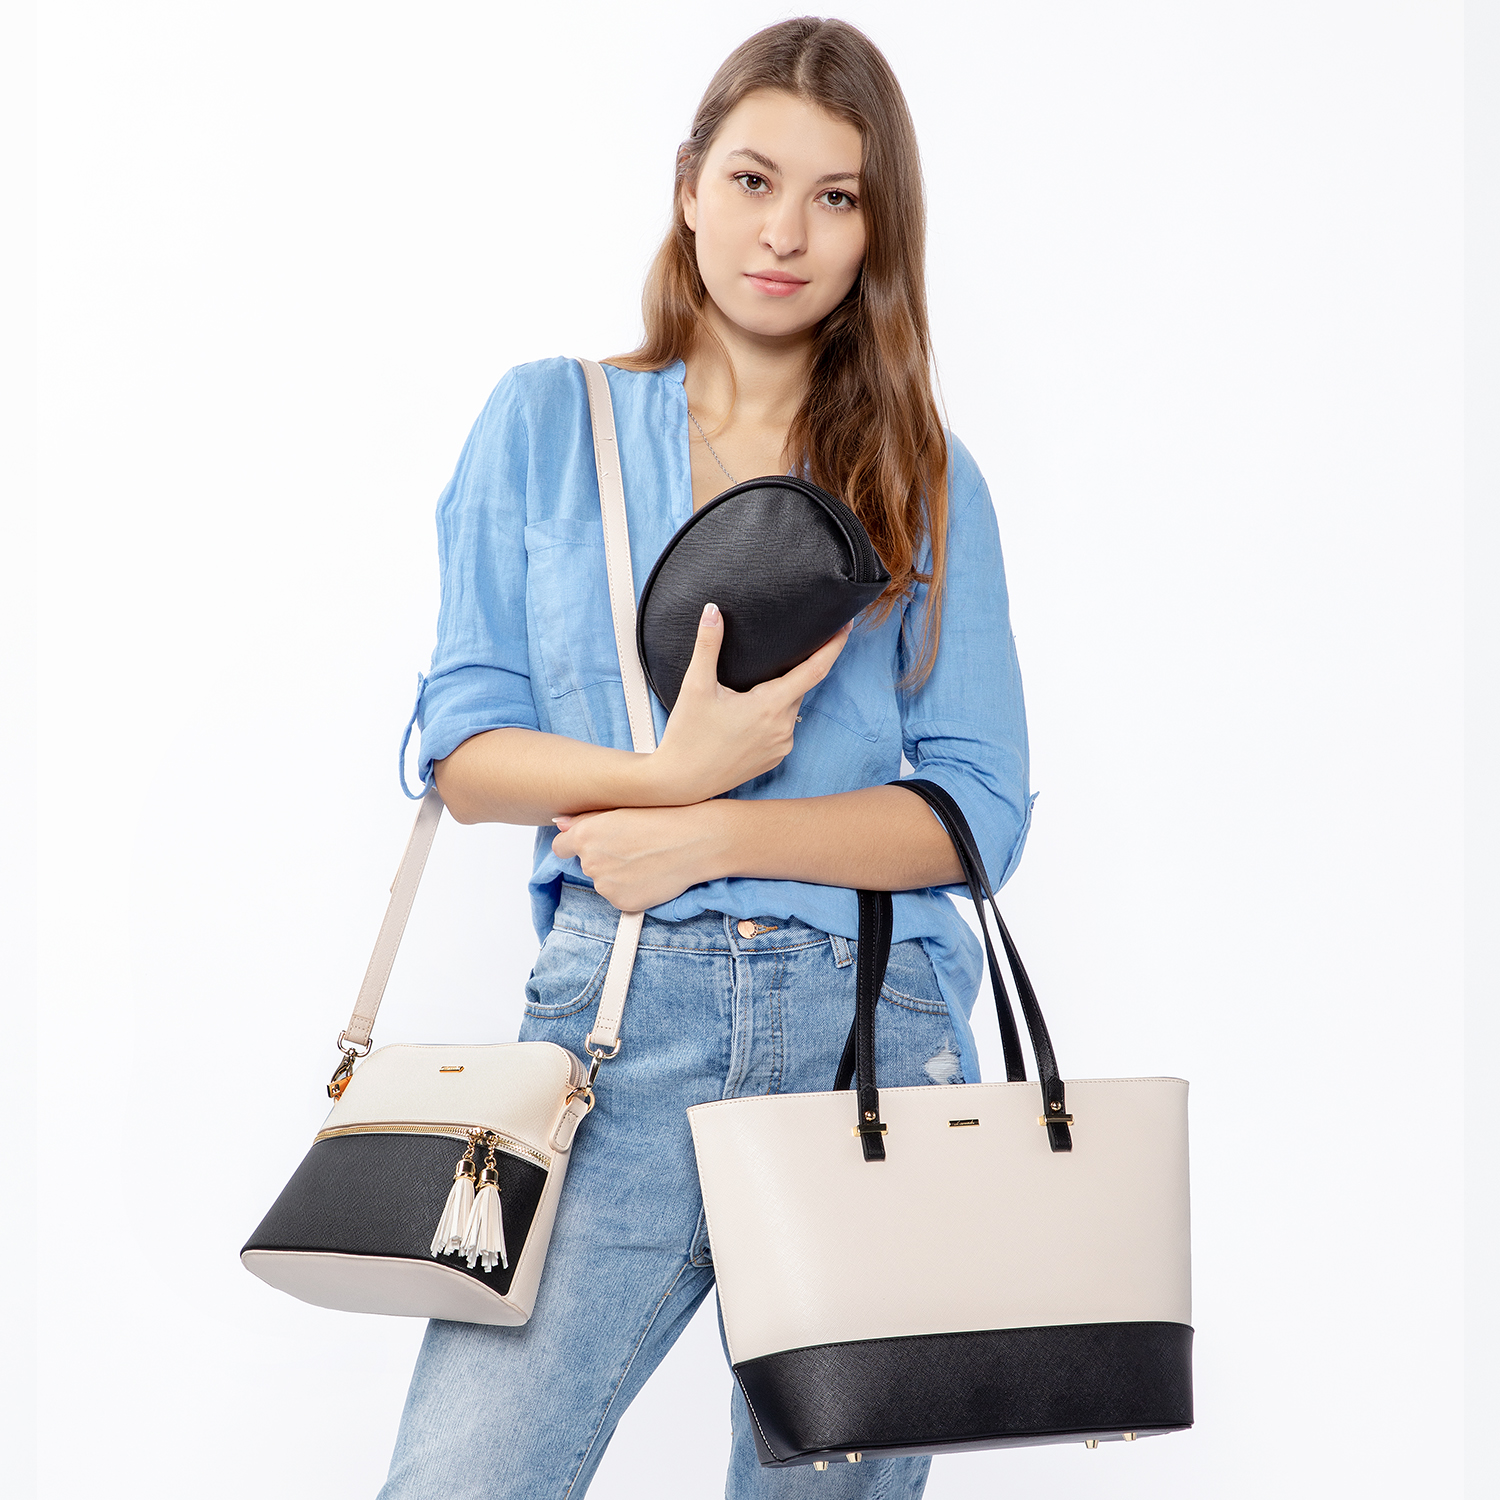 Ha3e779dca0d4495d9933d310c5f5dcc6D - women shoulder bags crossbody bags for ladies large tote bag set 3 pcs clutch and purse luxury handbag women